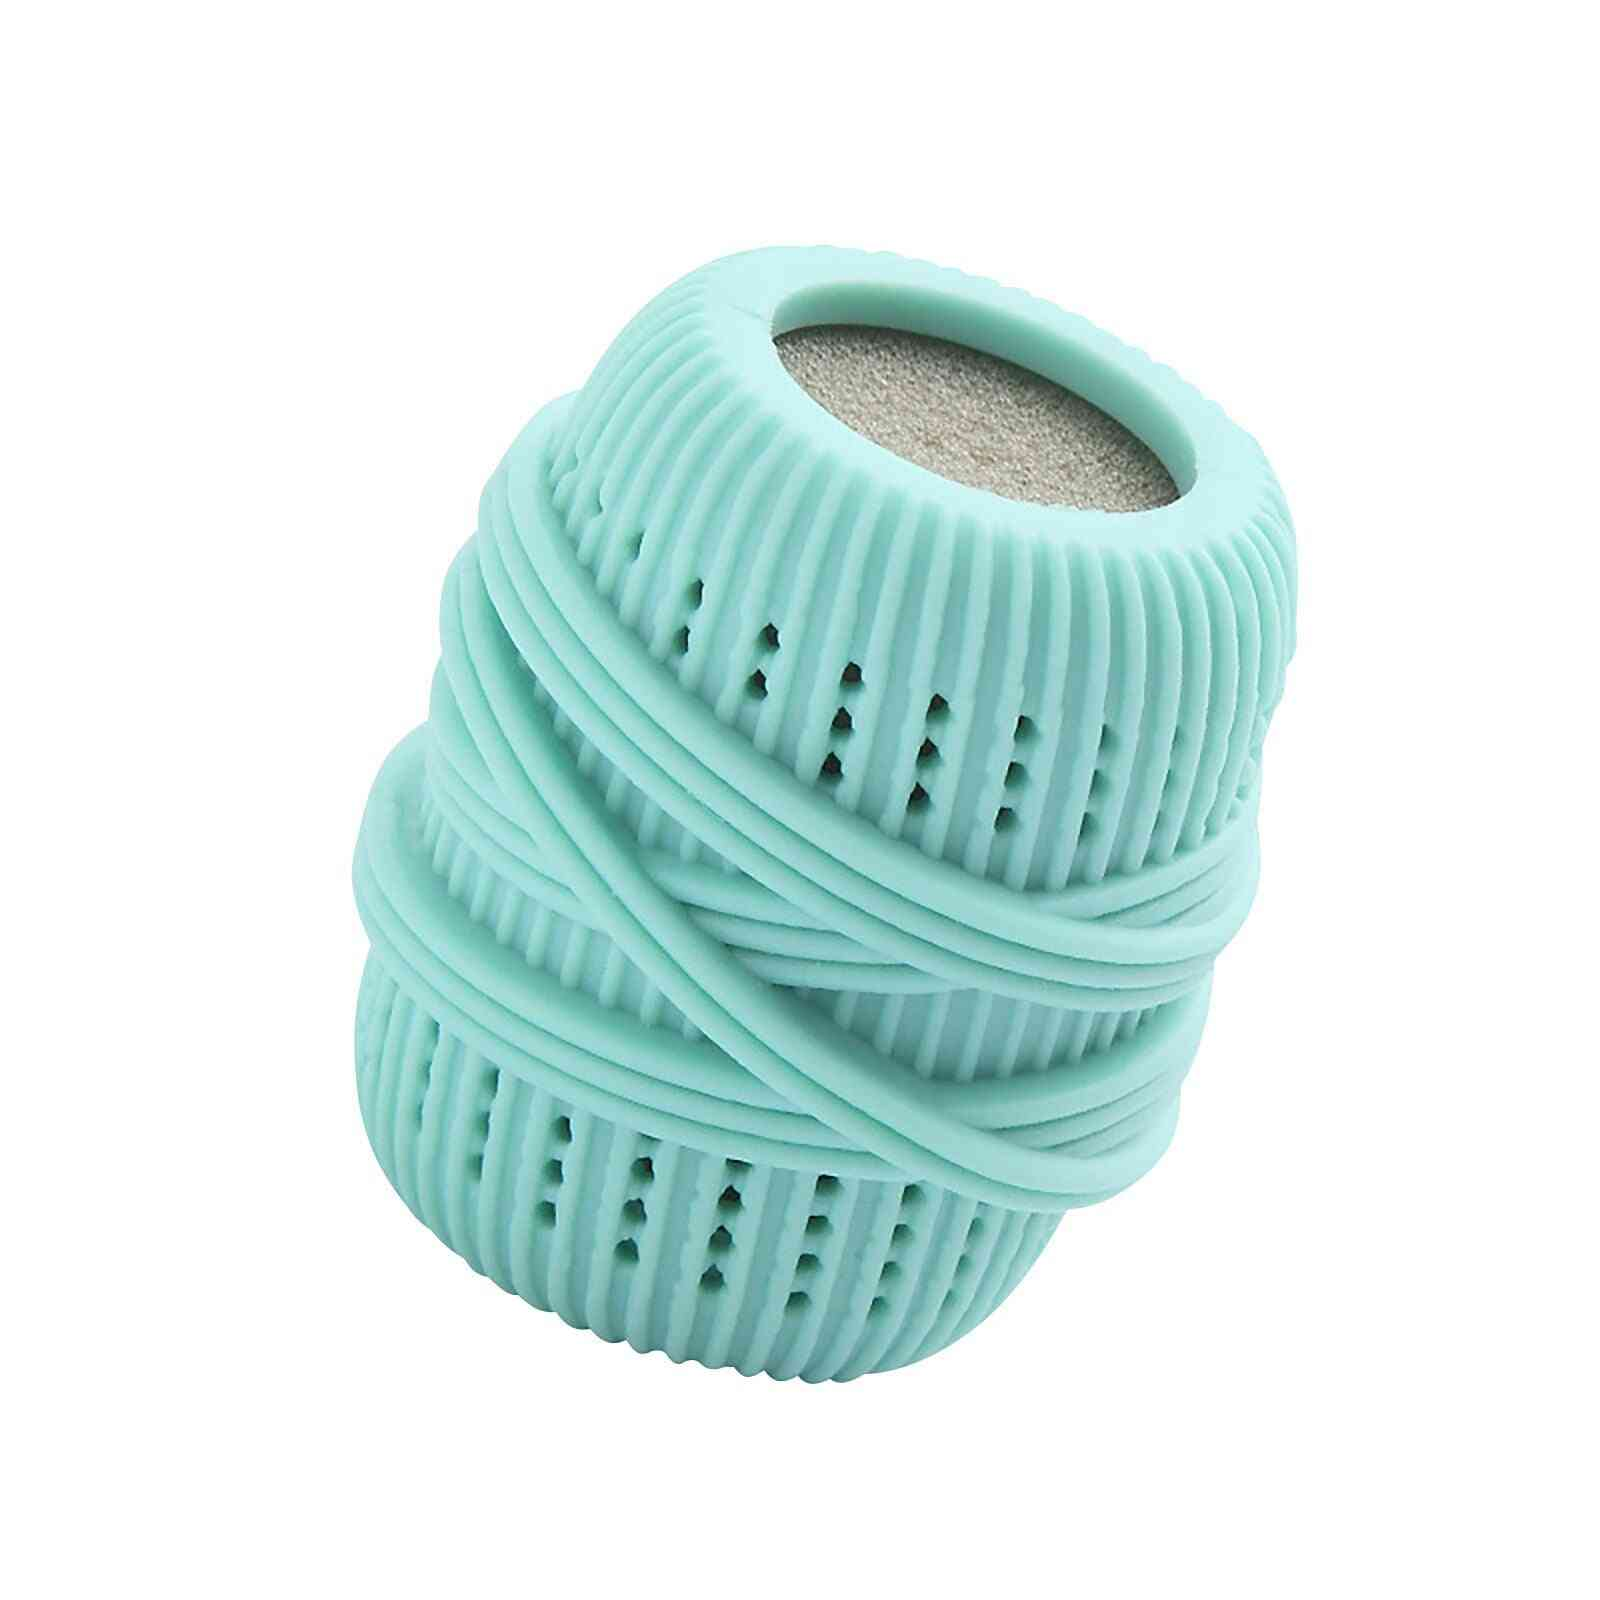 40# Reusable Laundry Cleaning Balls For Clothes Washing Machine, Cleaning Tools